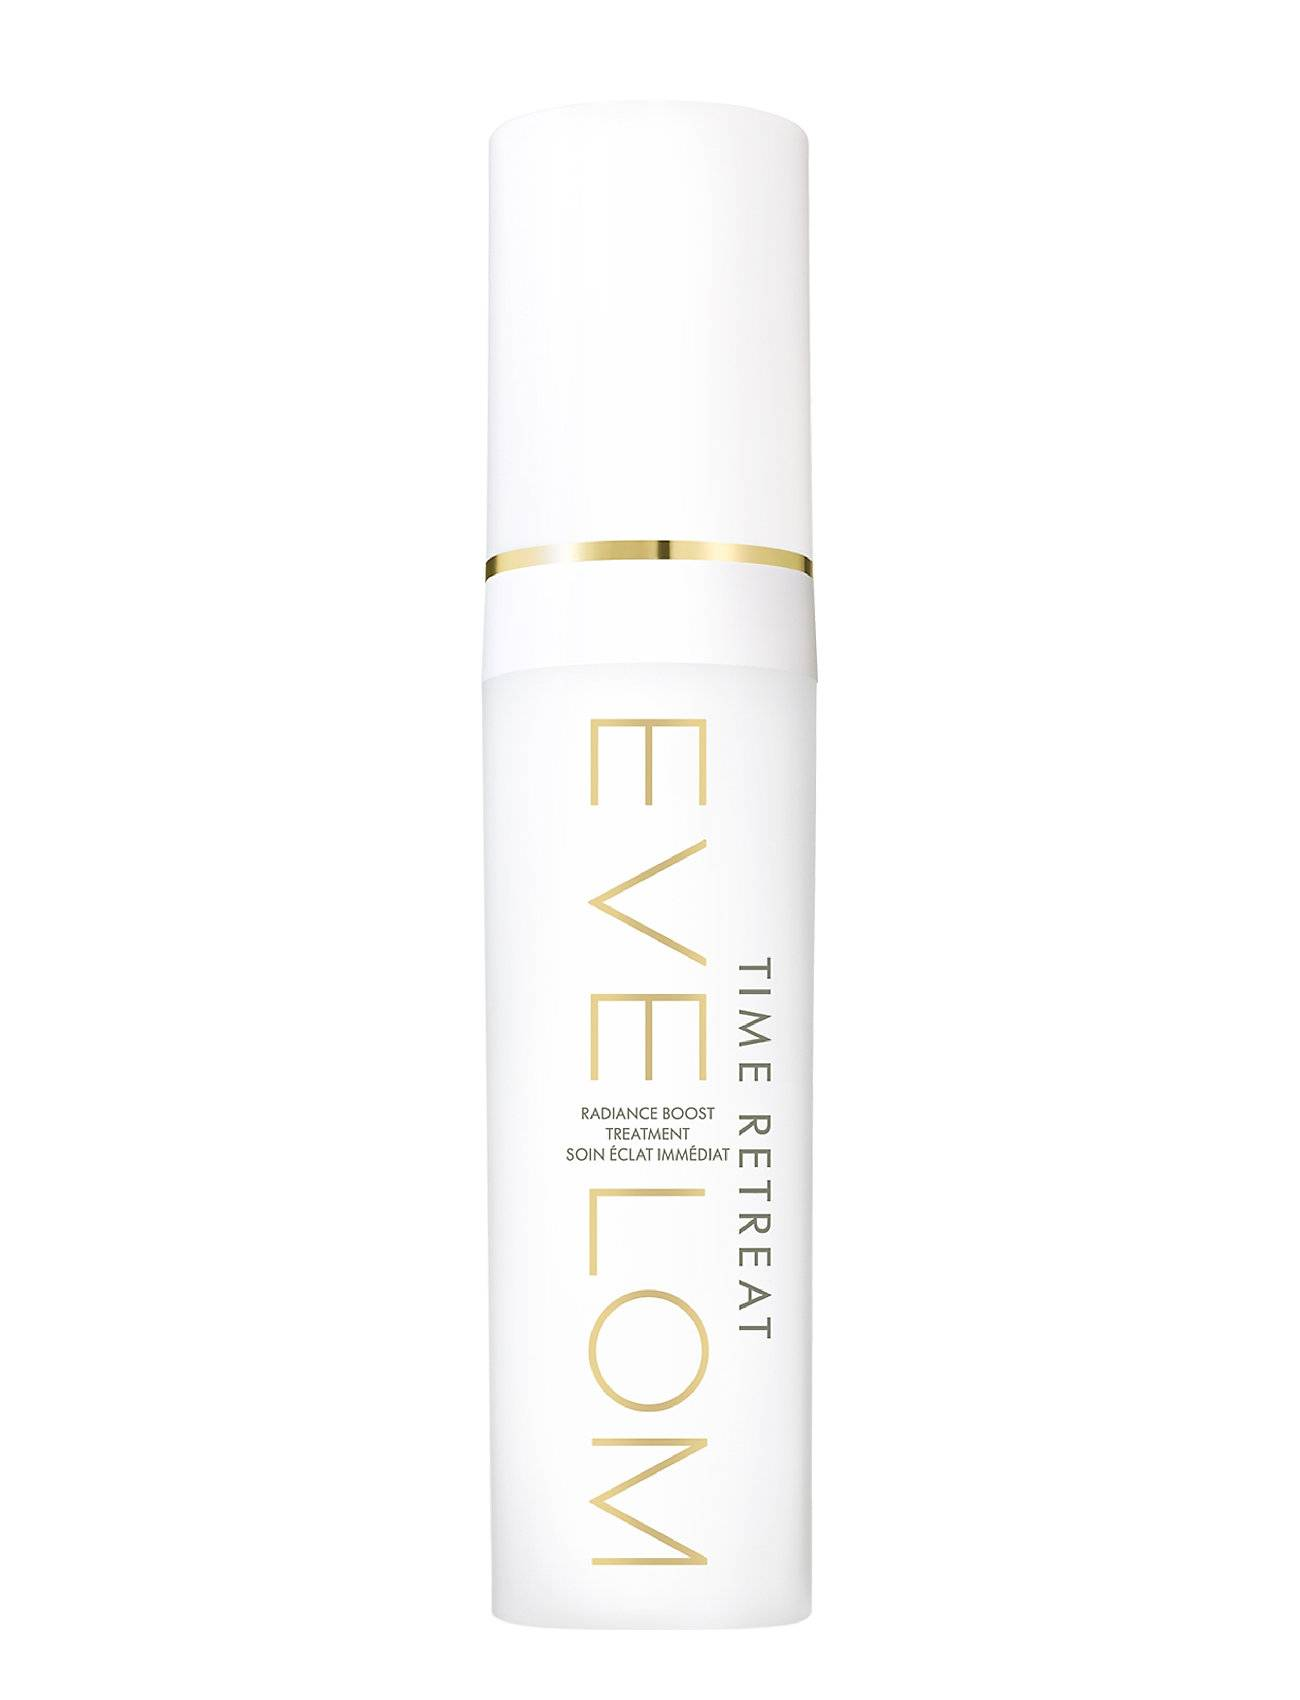 EVE LOM Time Retreat Radiance Boost Treatment